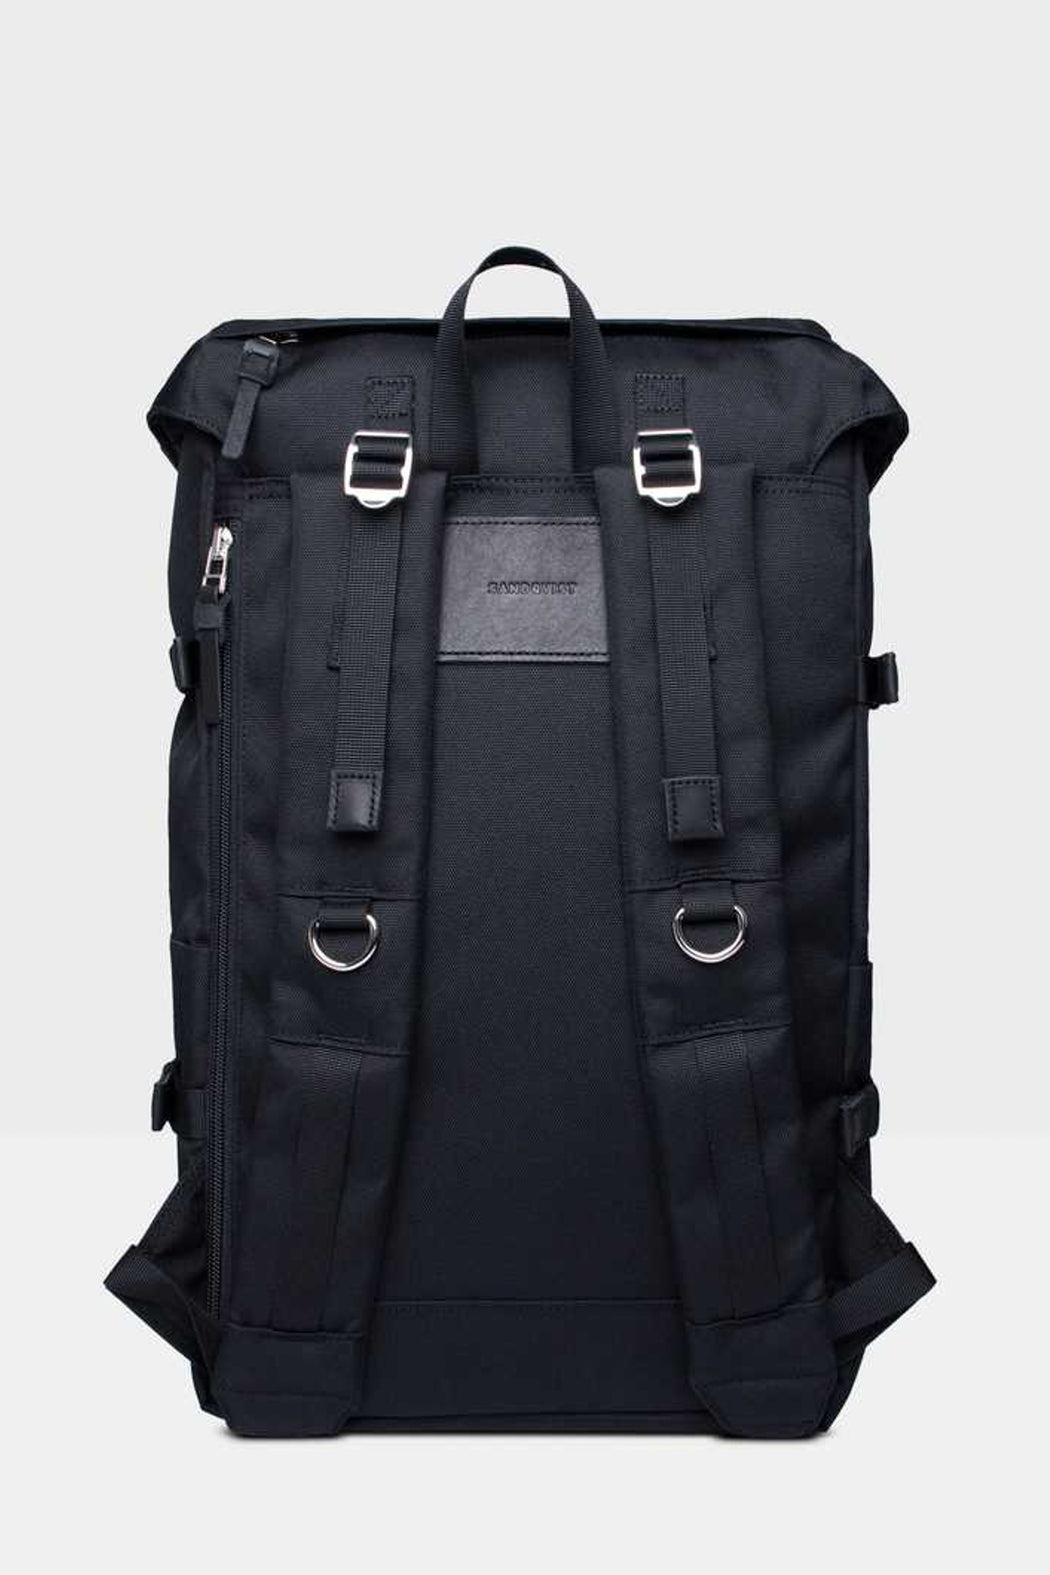 HARALD Backpack black with black leather